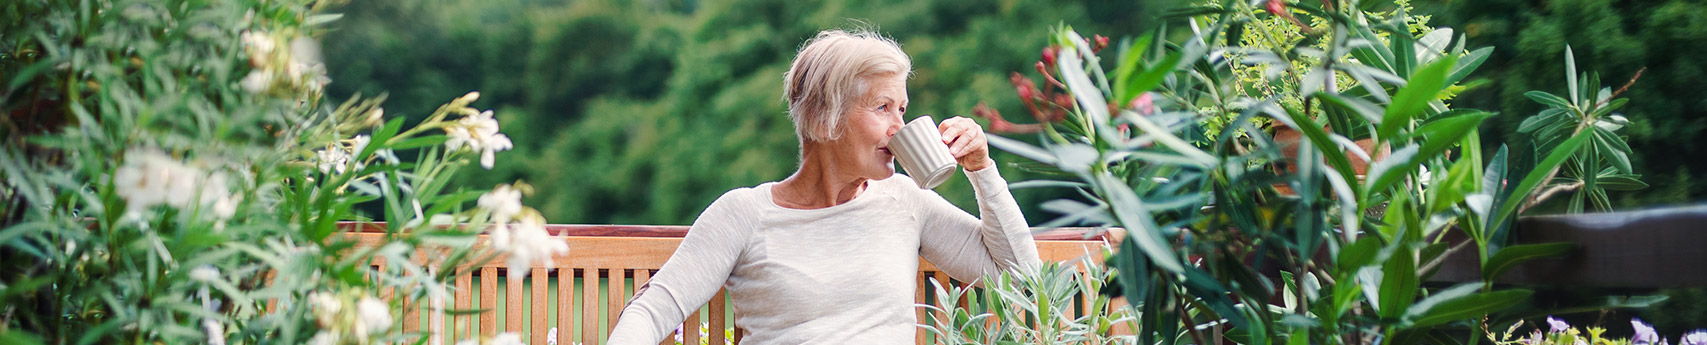 lady drinking coffee with dentures